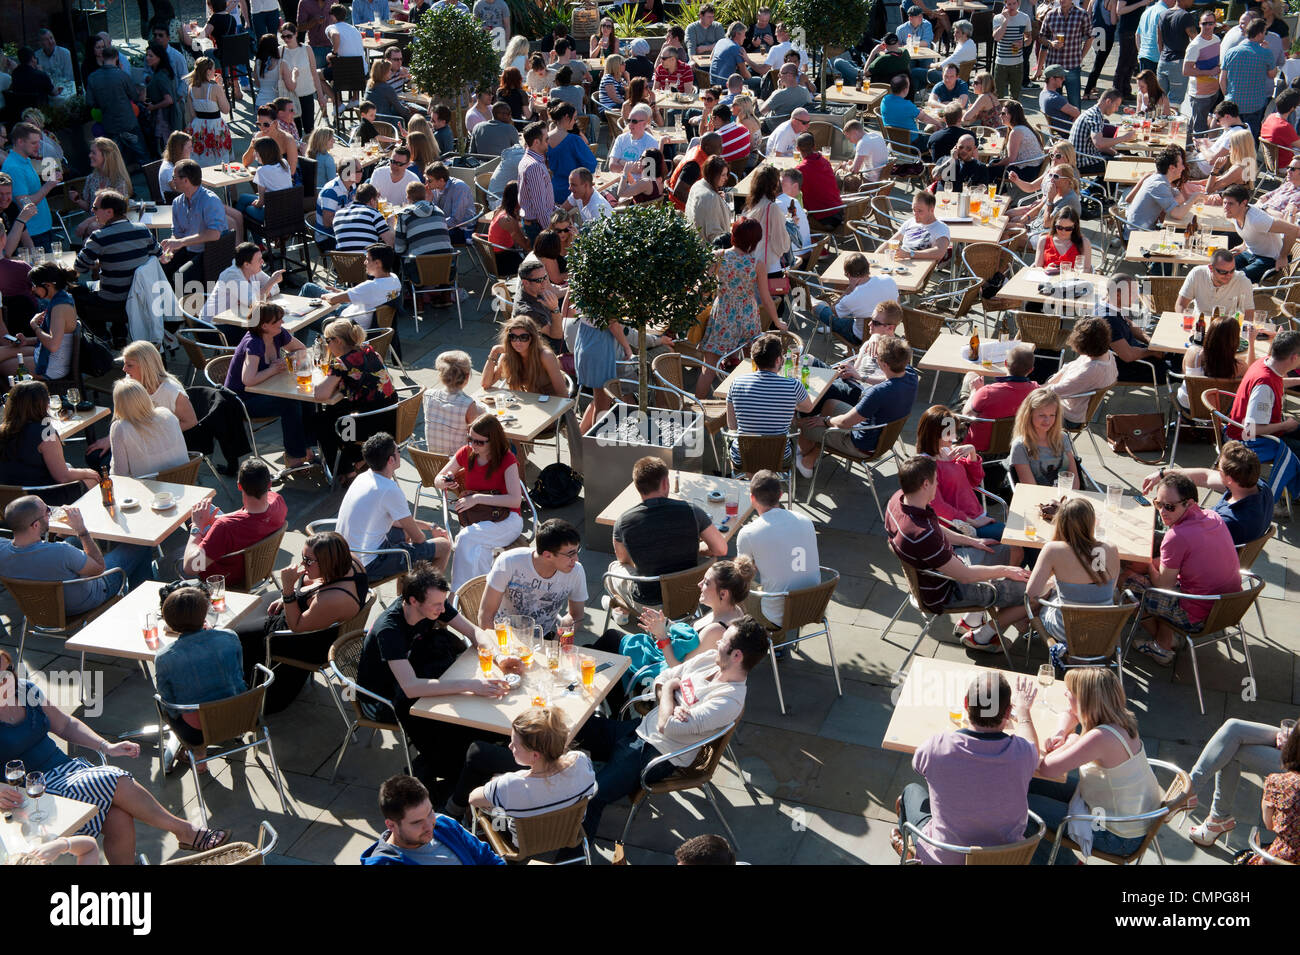 Revellers enjoy the evening sunshine in a beer garden in Castlefield in Manchester (Editorial use only). - Stock Image